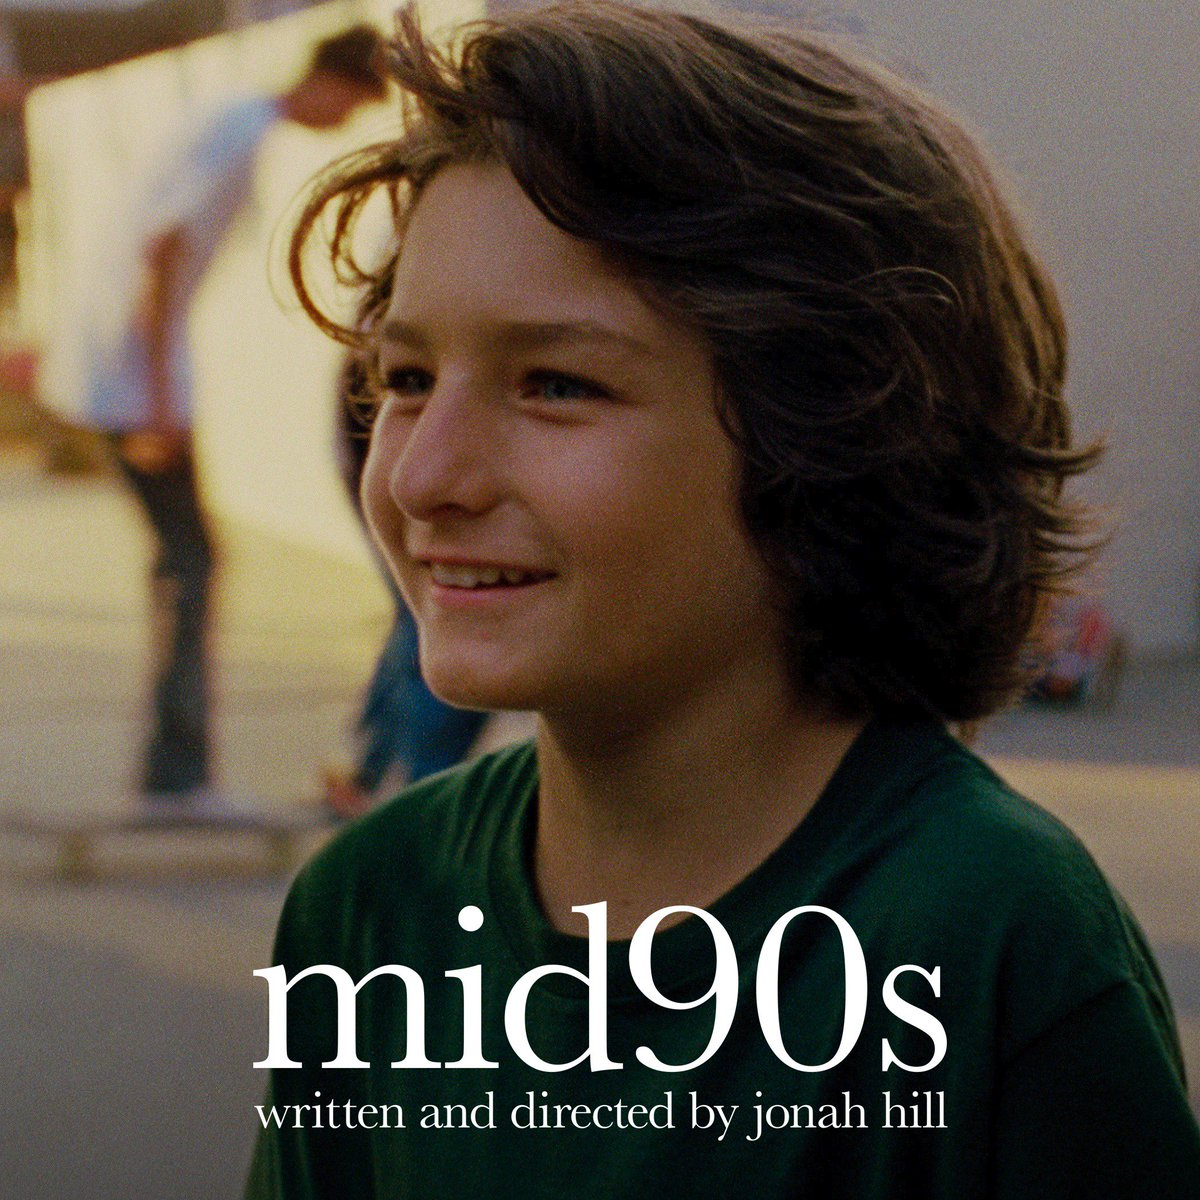 A month out, can't believe it .  #mid90s     Coming Soon https://t.co/U9SXVnv5ej